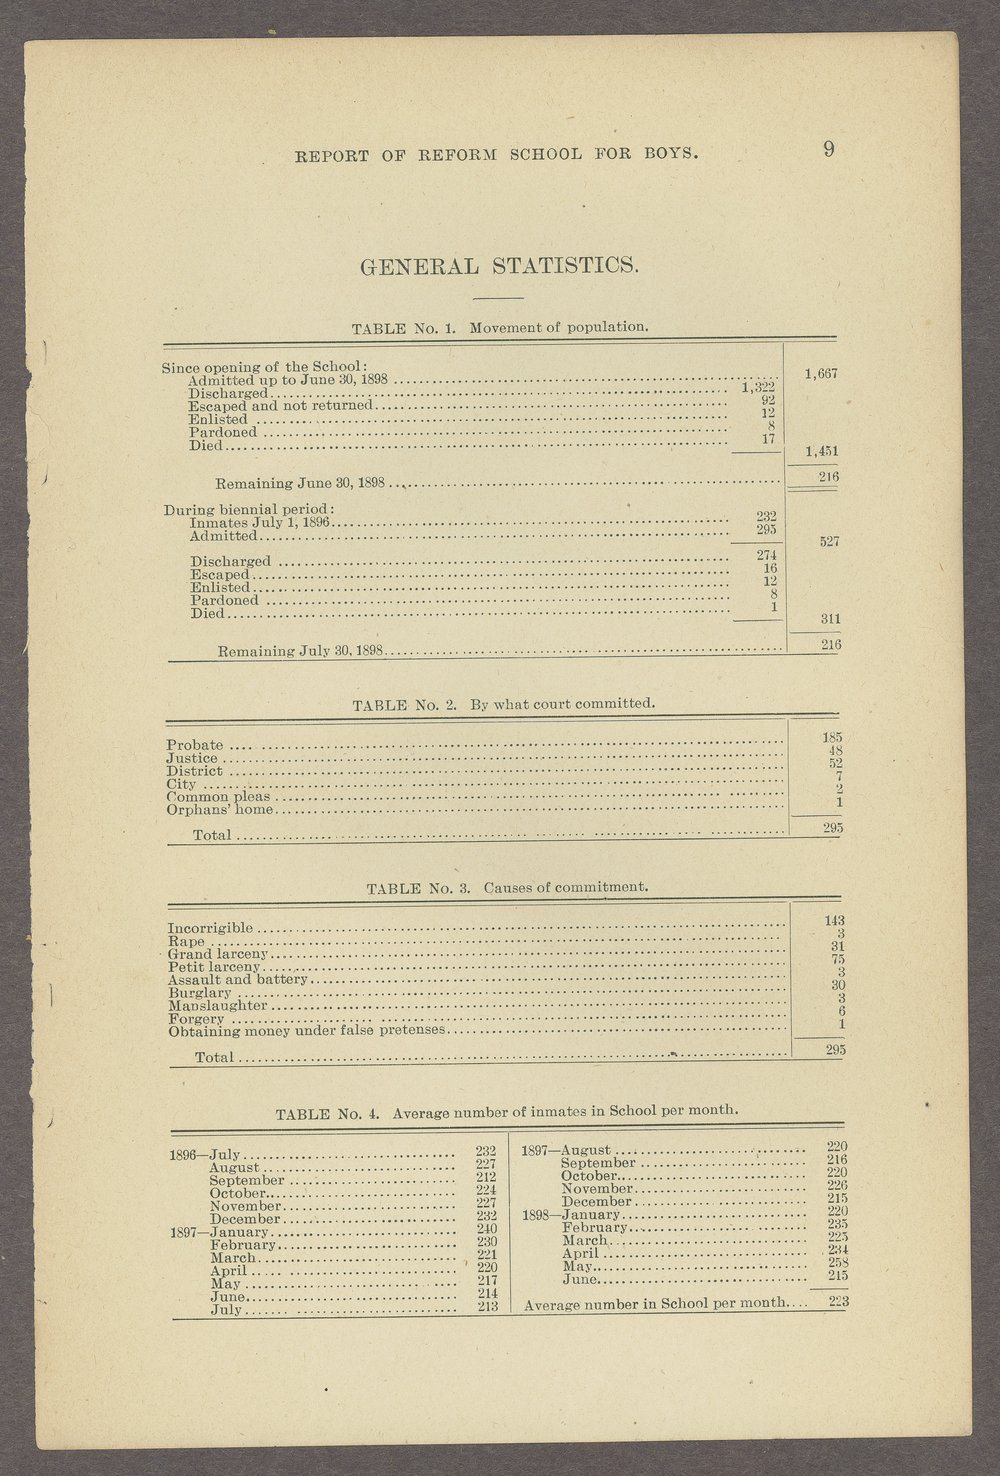 Biennial report of the State Reform School,1898 - 9